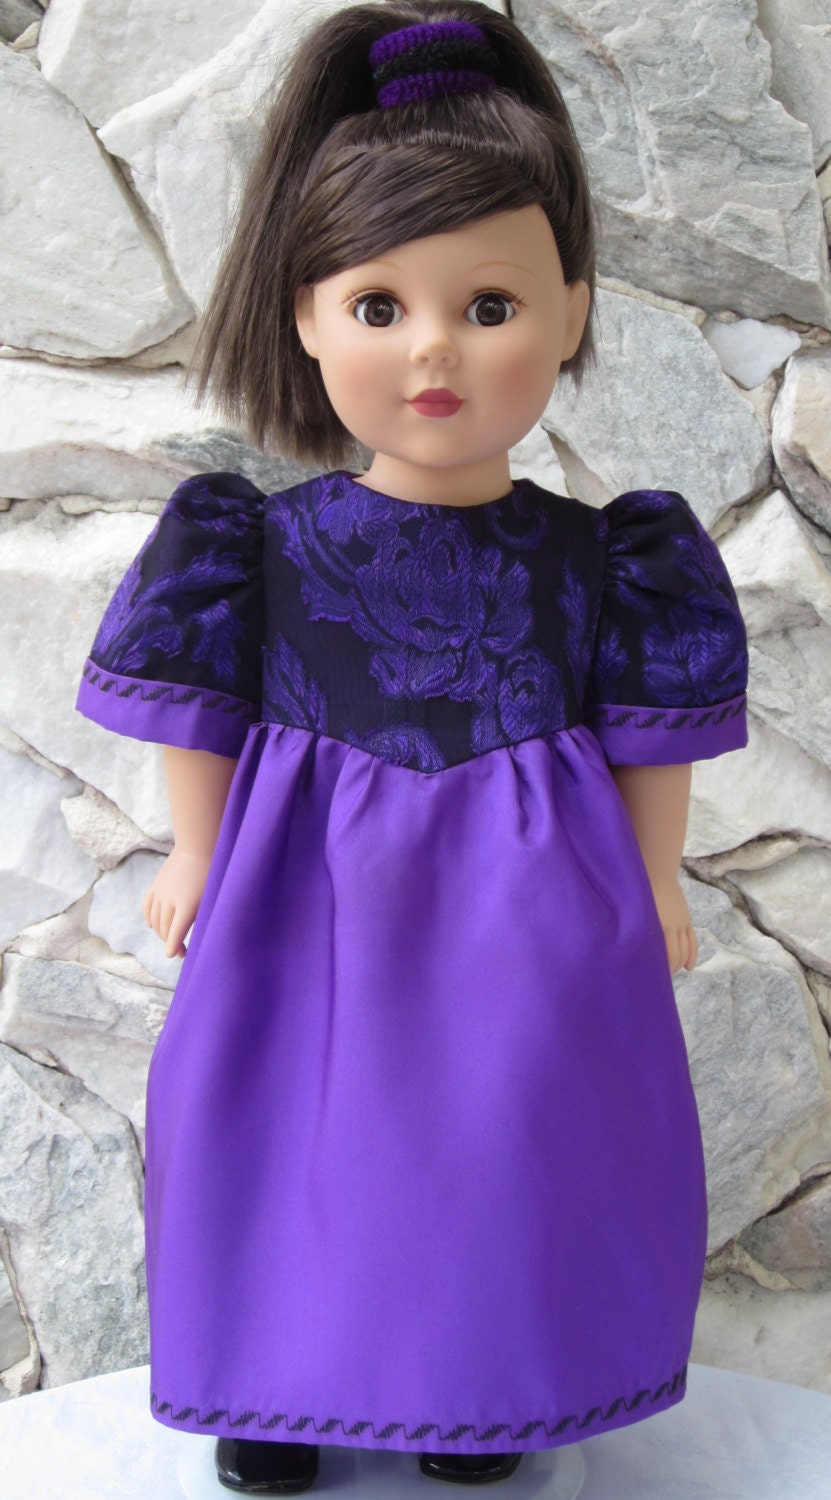 "Red-violet taffeta gown with a black & purple chiffon overlaid bodice for an 18"" doll. - TinaDollDesigns"